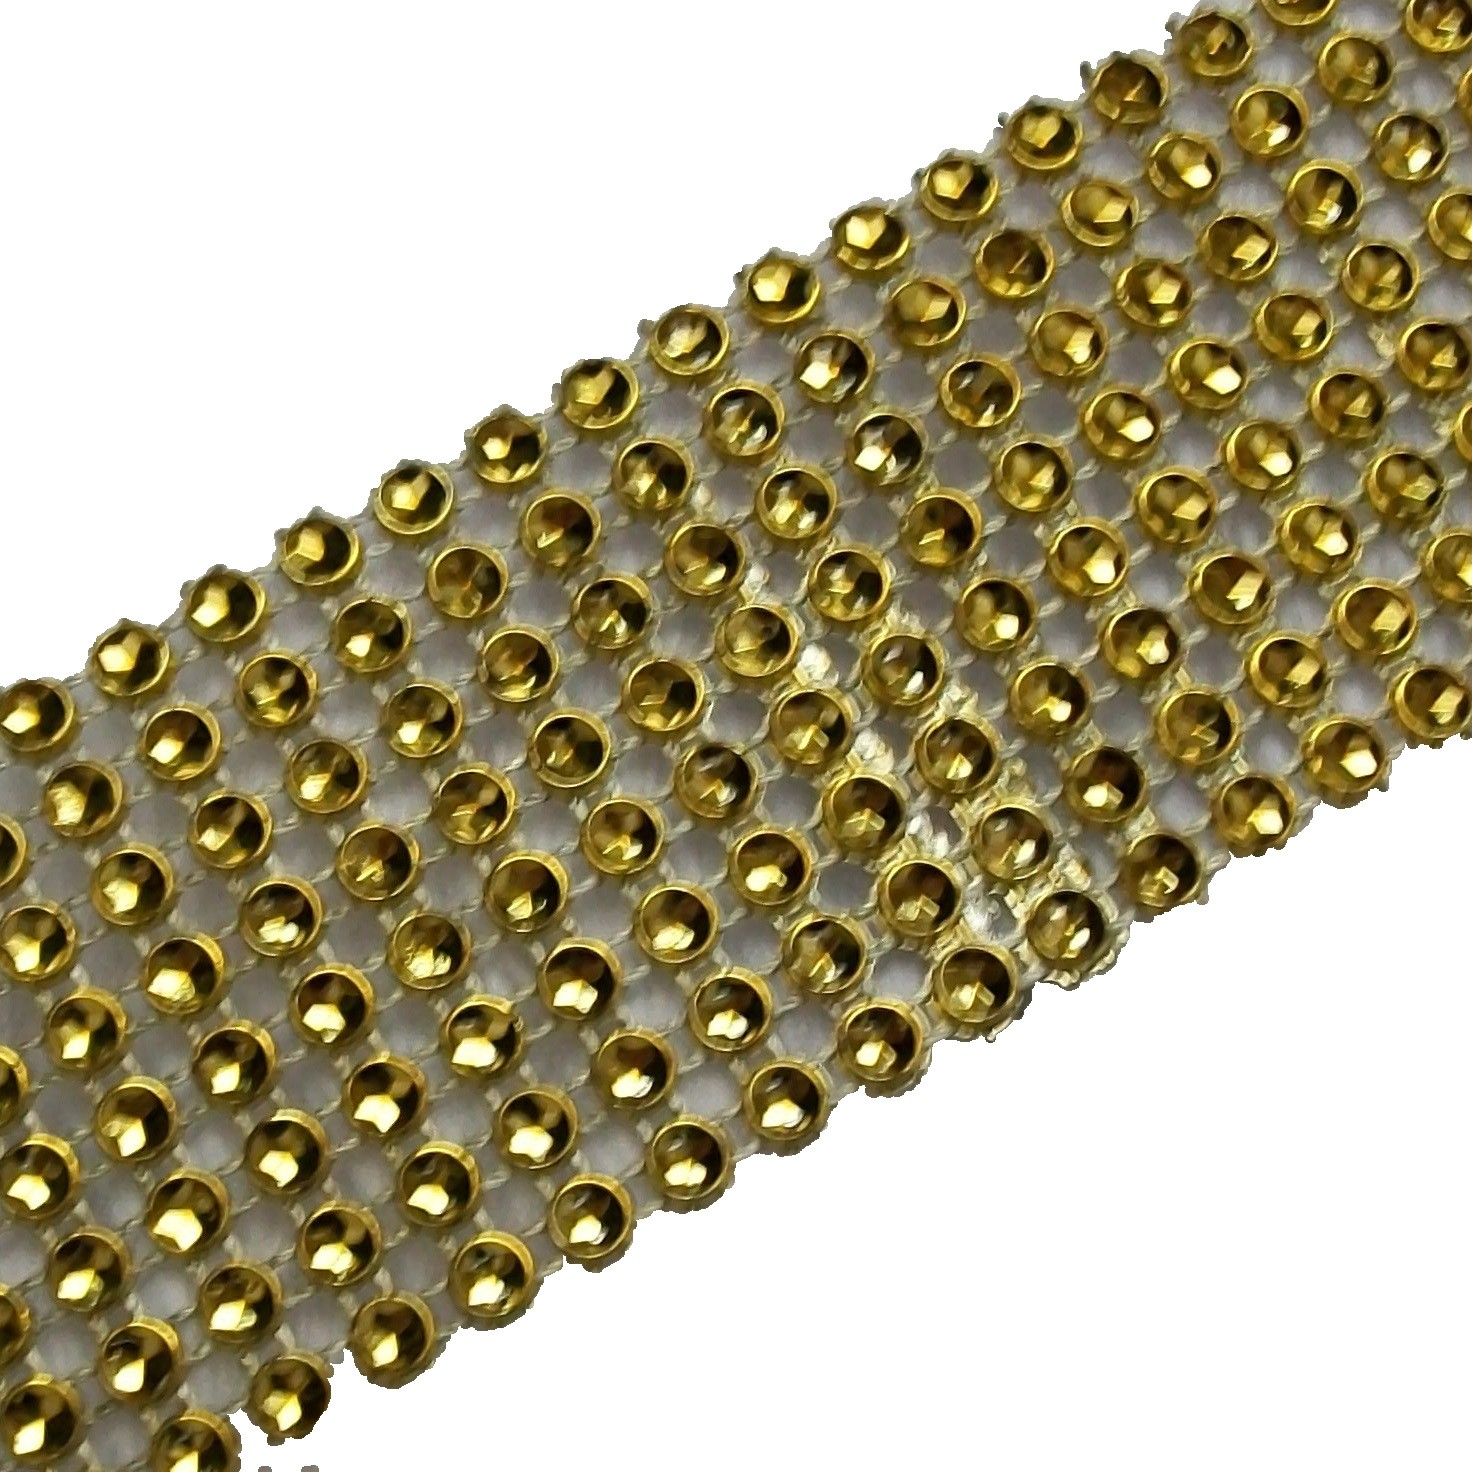 8 Row Diamante Trim 3.8cm Wide Gold 1 metre length